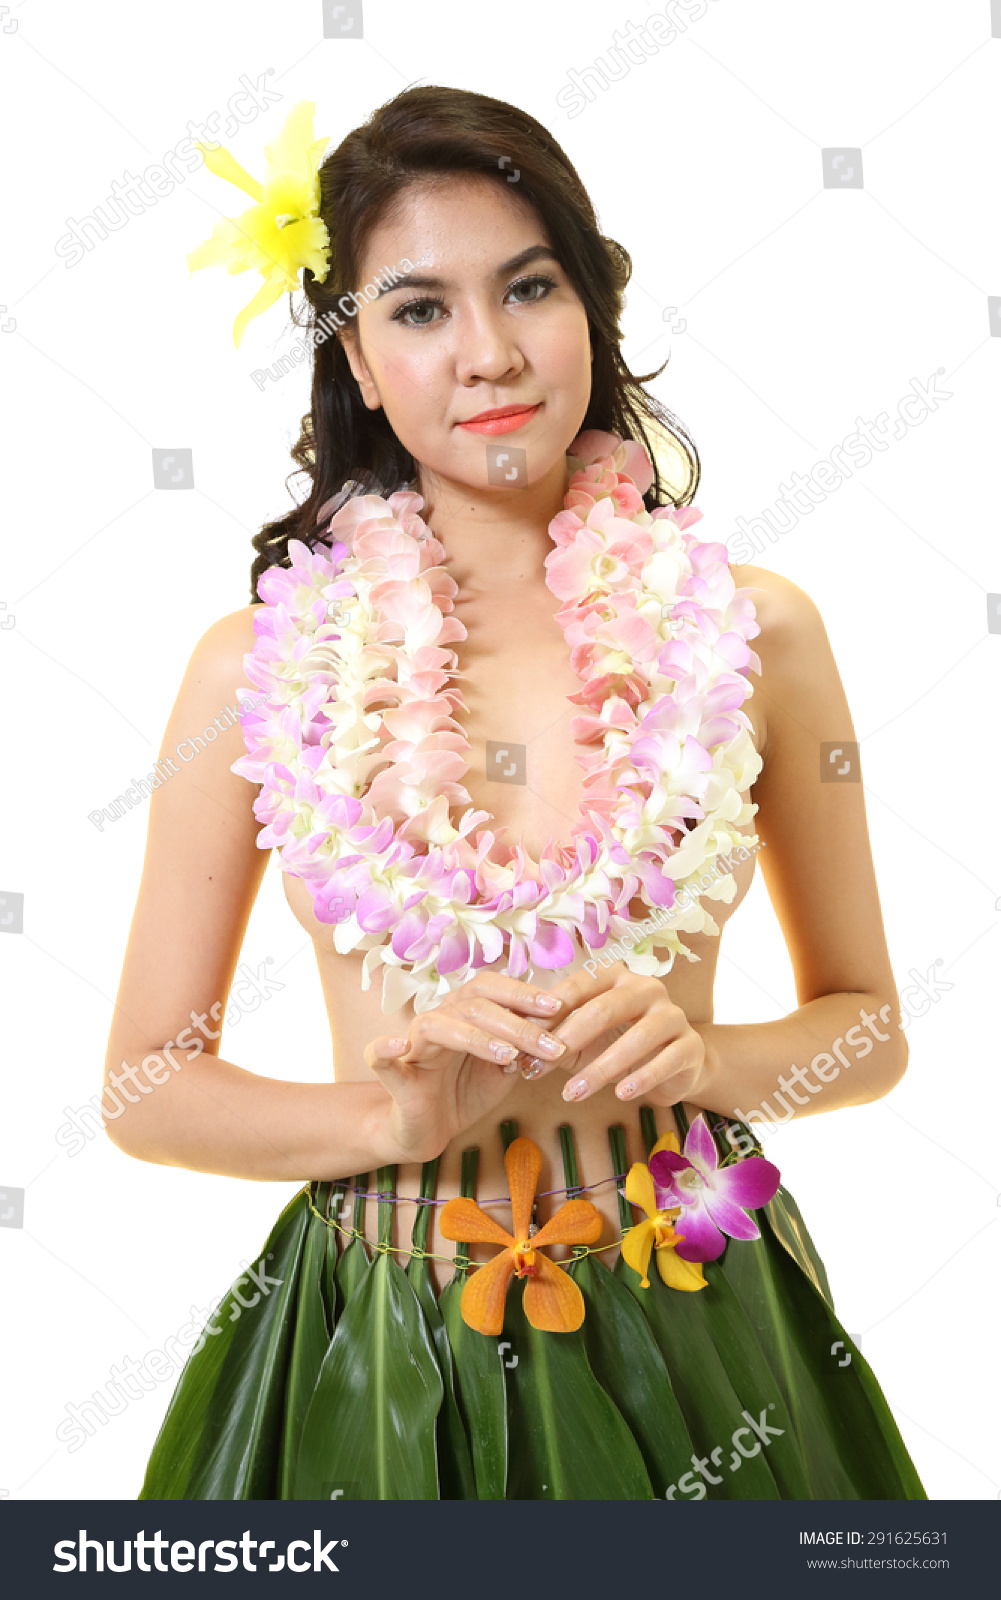 Beautiful woman dress hawaiian style flower stock photo royalty beautiful woman dress in hawaiian style with flower lei garland of white orchids on white background izmirmasajfo Images